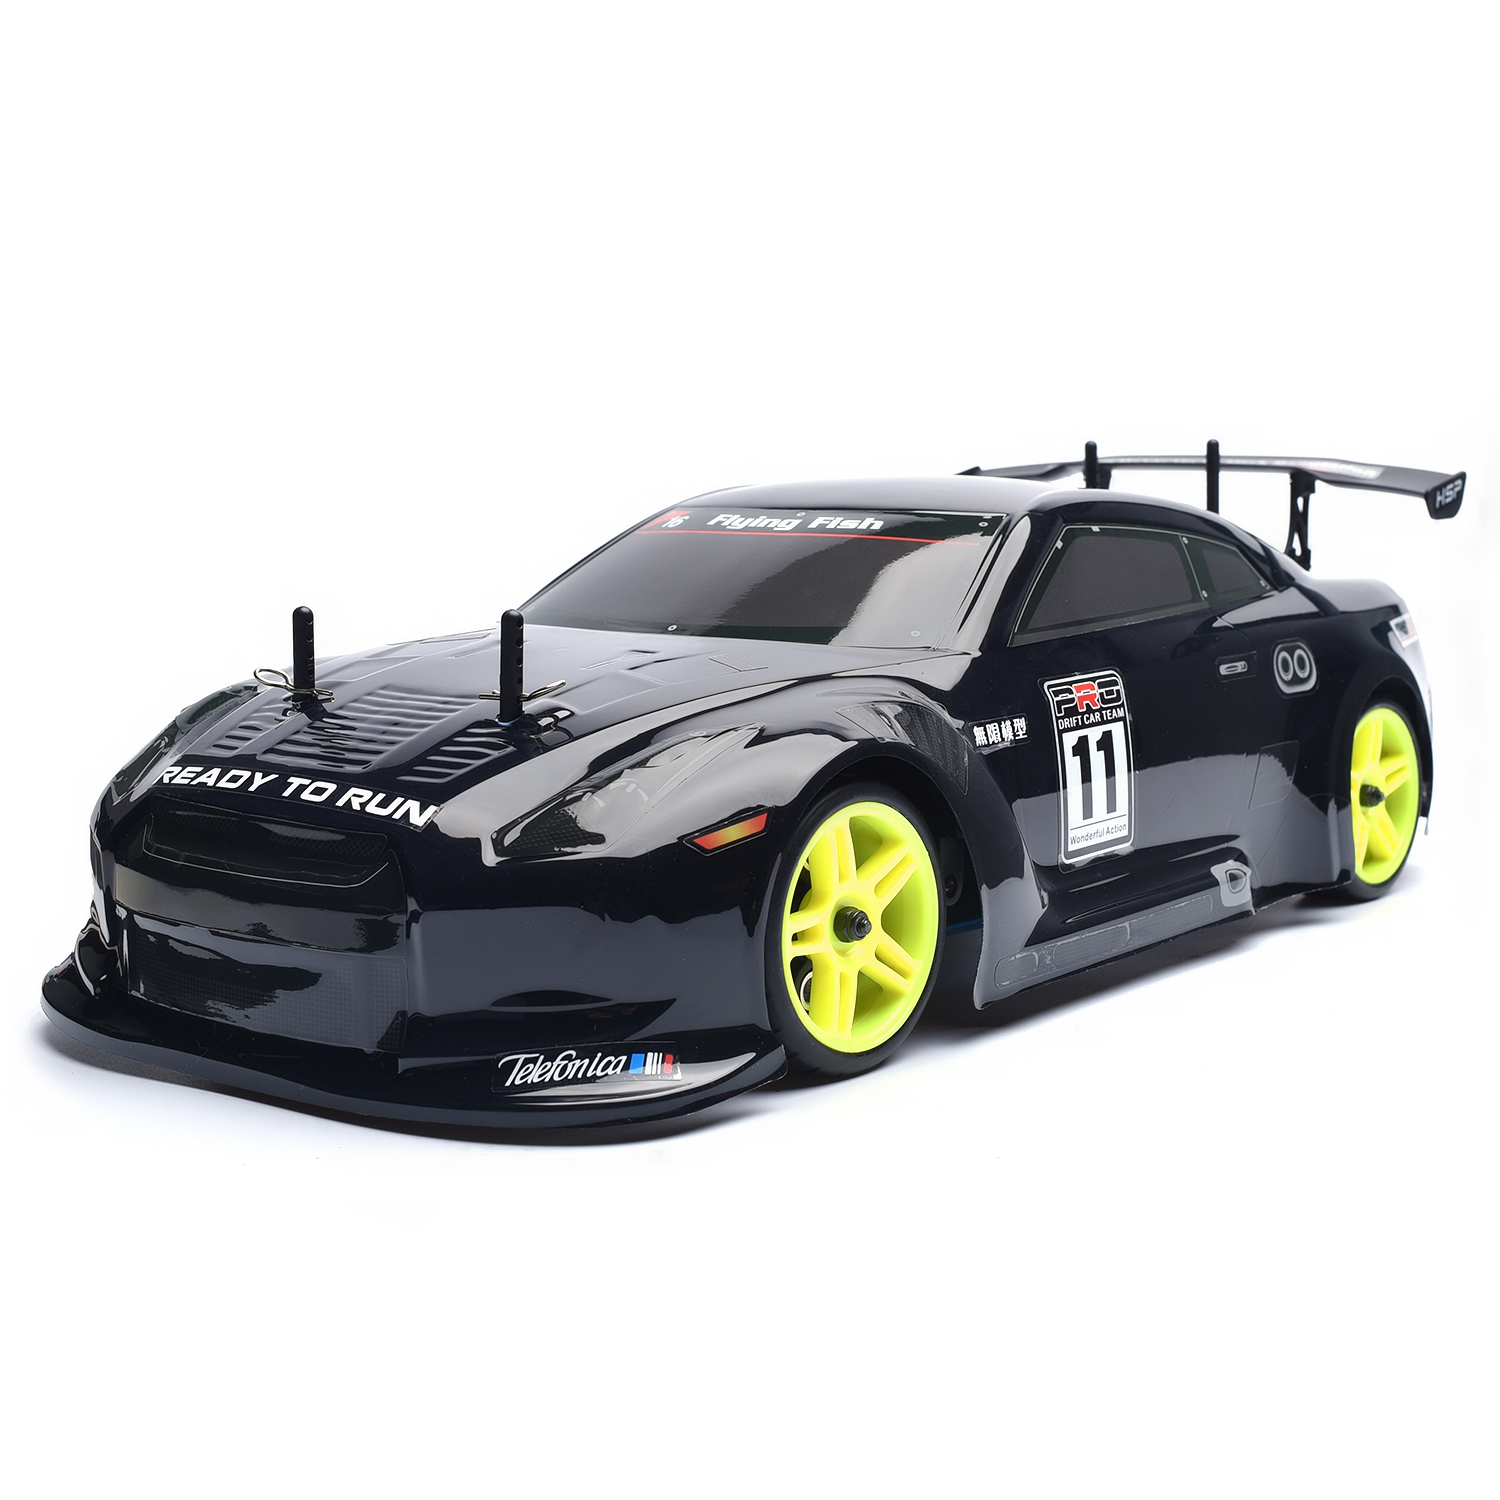 Hsp Rc Drift Car 4wd 1 10 Scale Racing Nitro Gas Power Touring